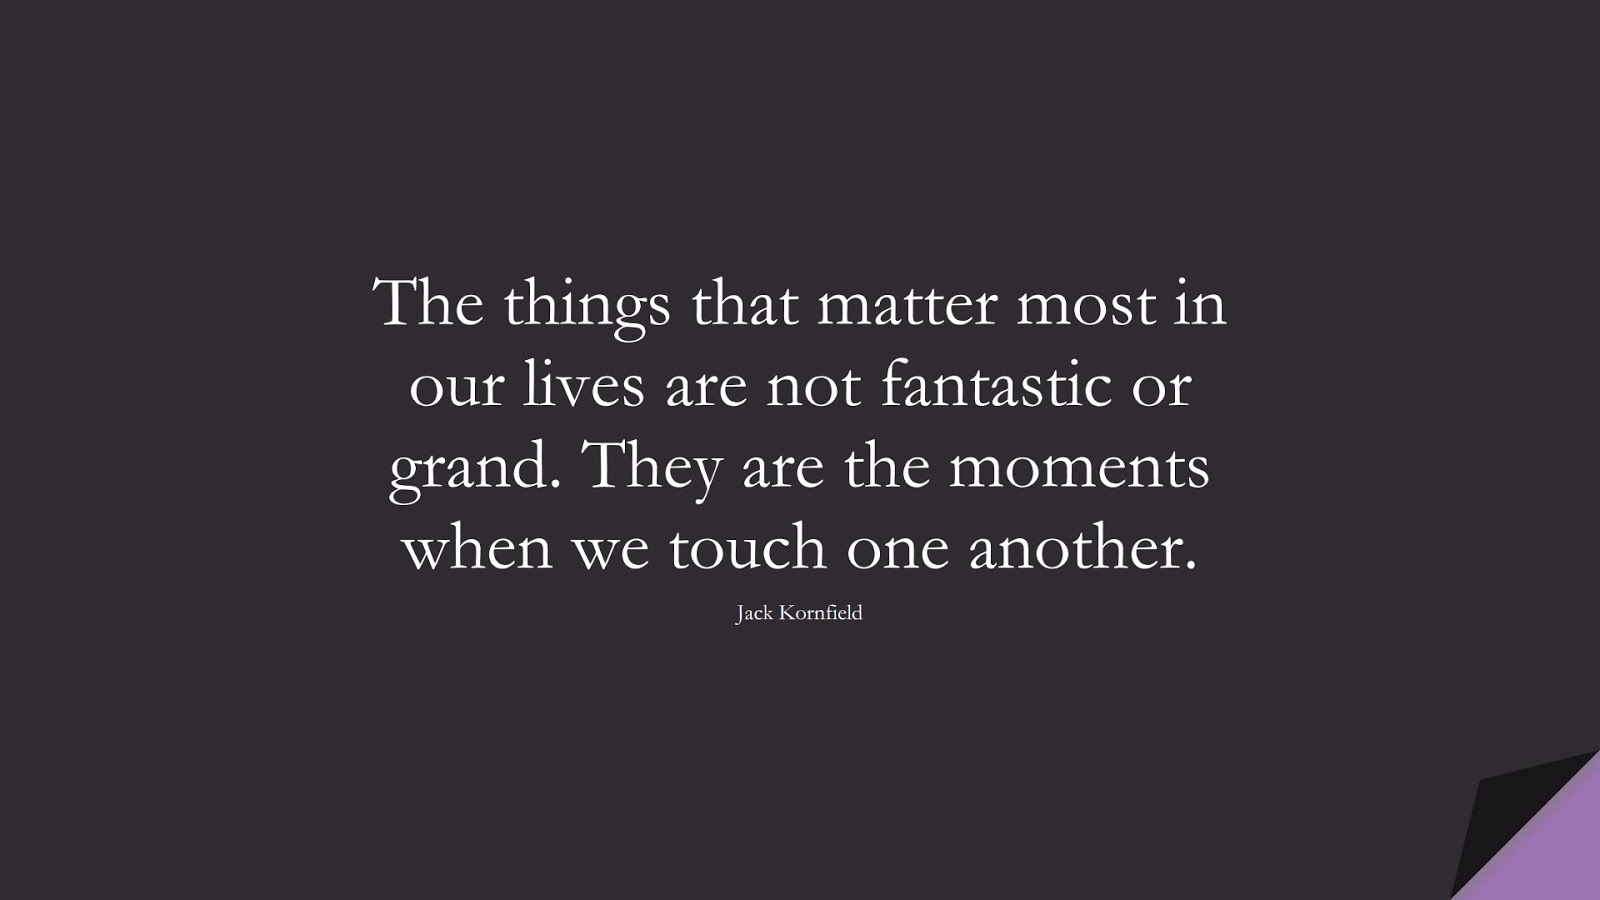 The things that matter most in our lives are not fantastic or grand. They are the moments when we touch one another. (Jack Kornfield);  #RelationshipQuotes